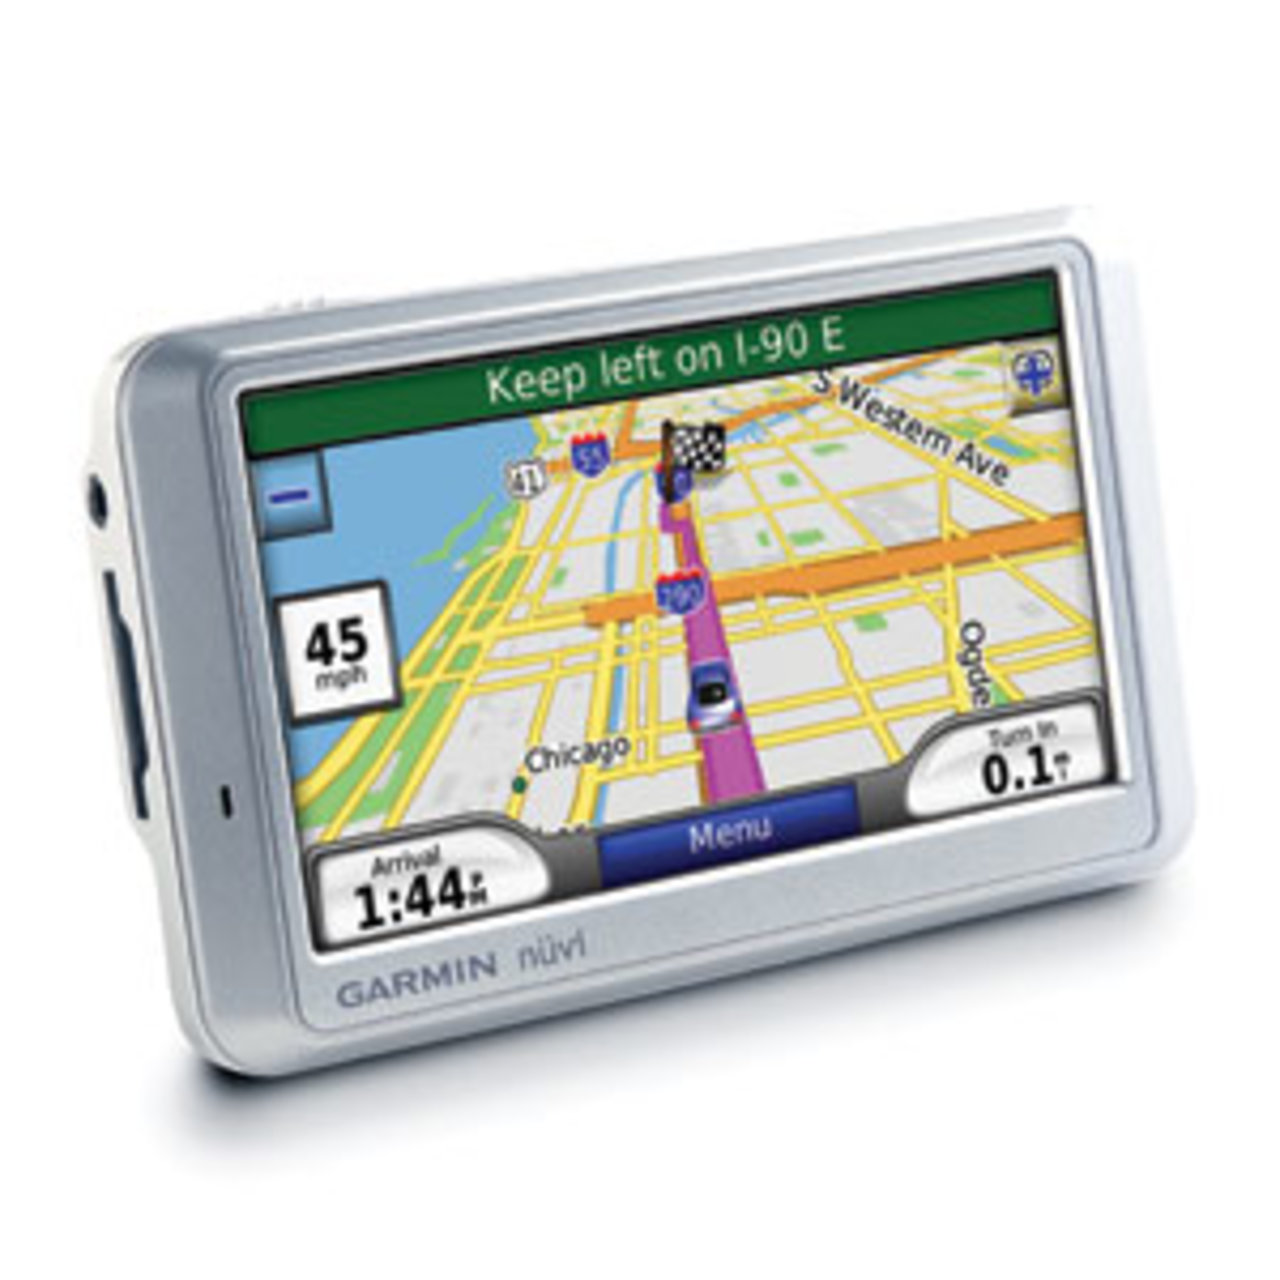 update map on garmin nuvi with Gallery on Ecuador furthermore Garmin Nuvi 1260t Gps Vehicle Navigation System Bluetooth Enabled 26592 besides Bahamas together with Gallery as well Garmin Bmw Motorrad Navigator Iv Update.